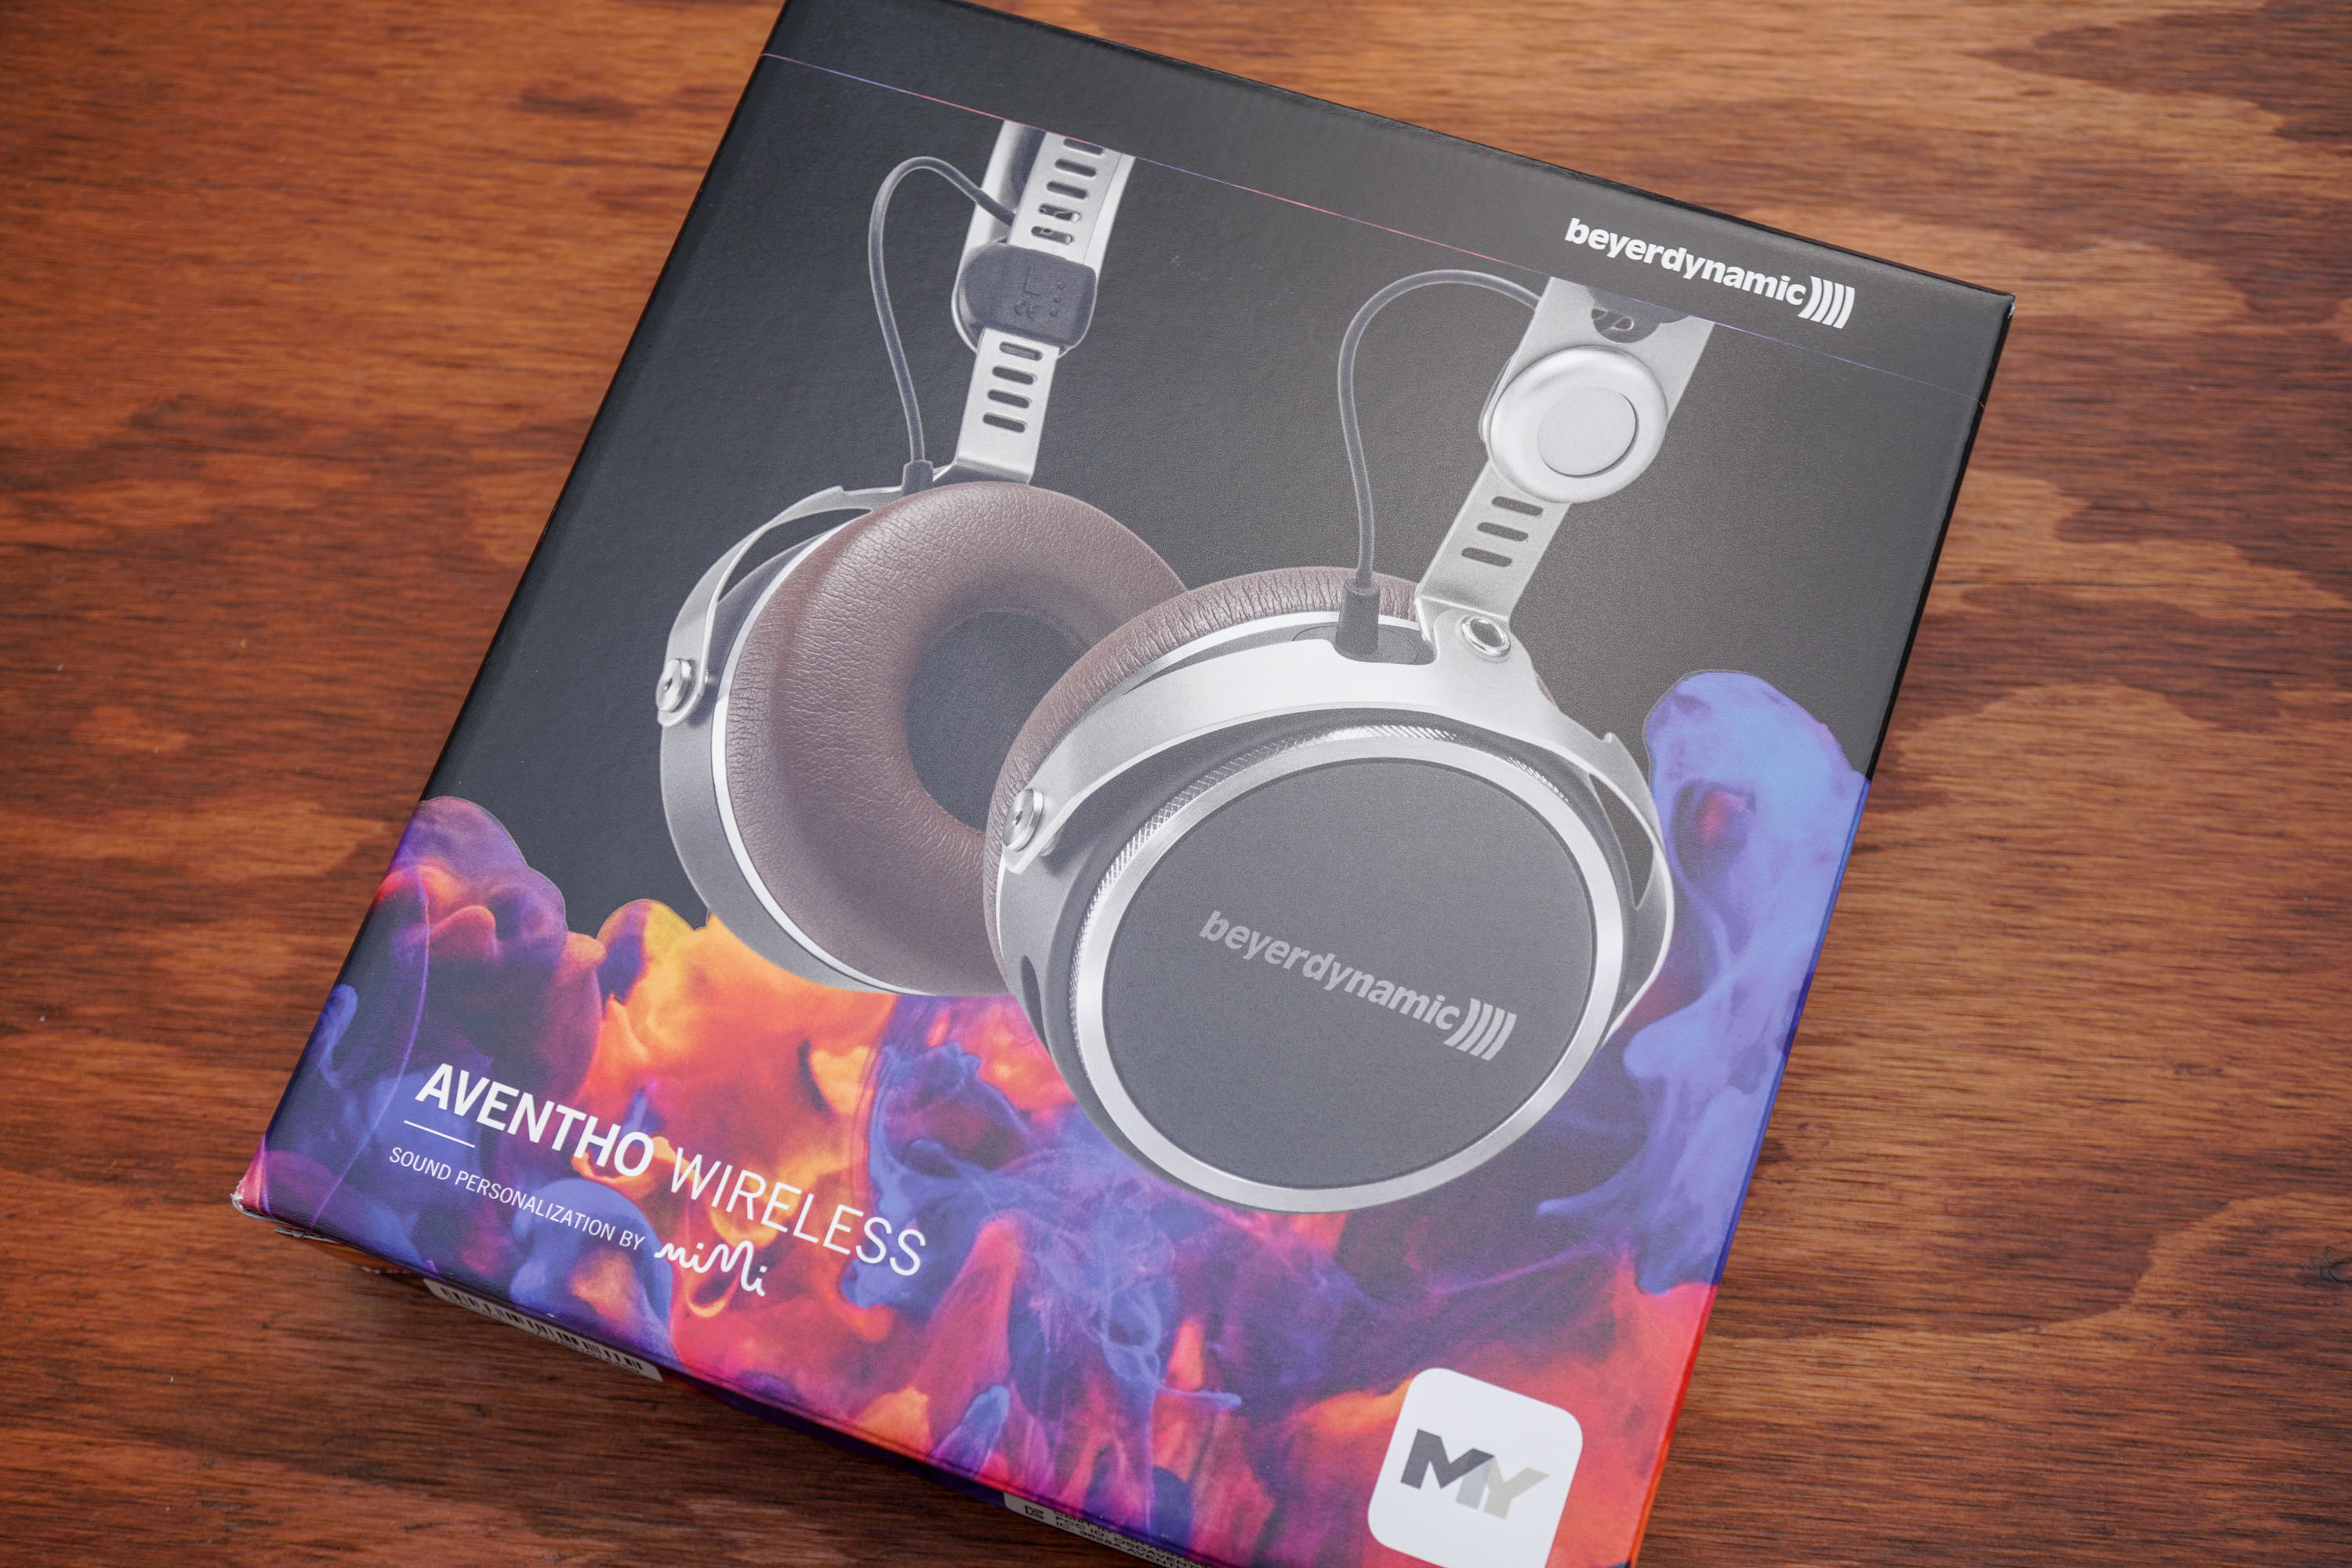 Earphone Packing Mika Androidguys Android News And Opinion Page 42 Beyerdynamic Aventho Wireless Headphones